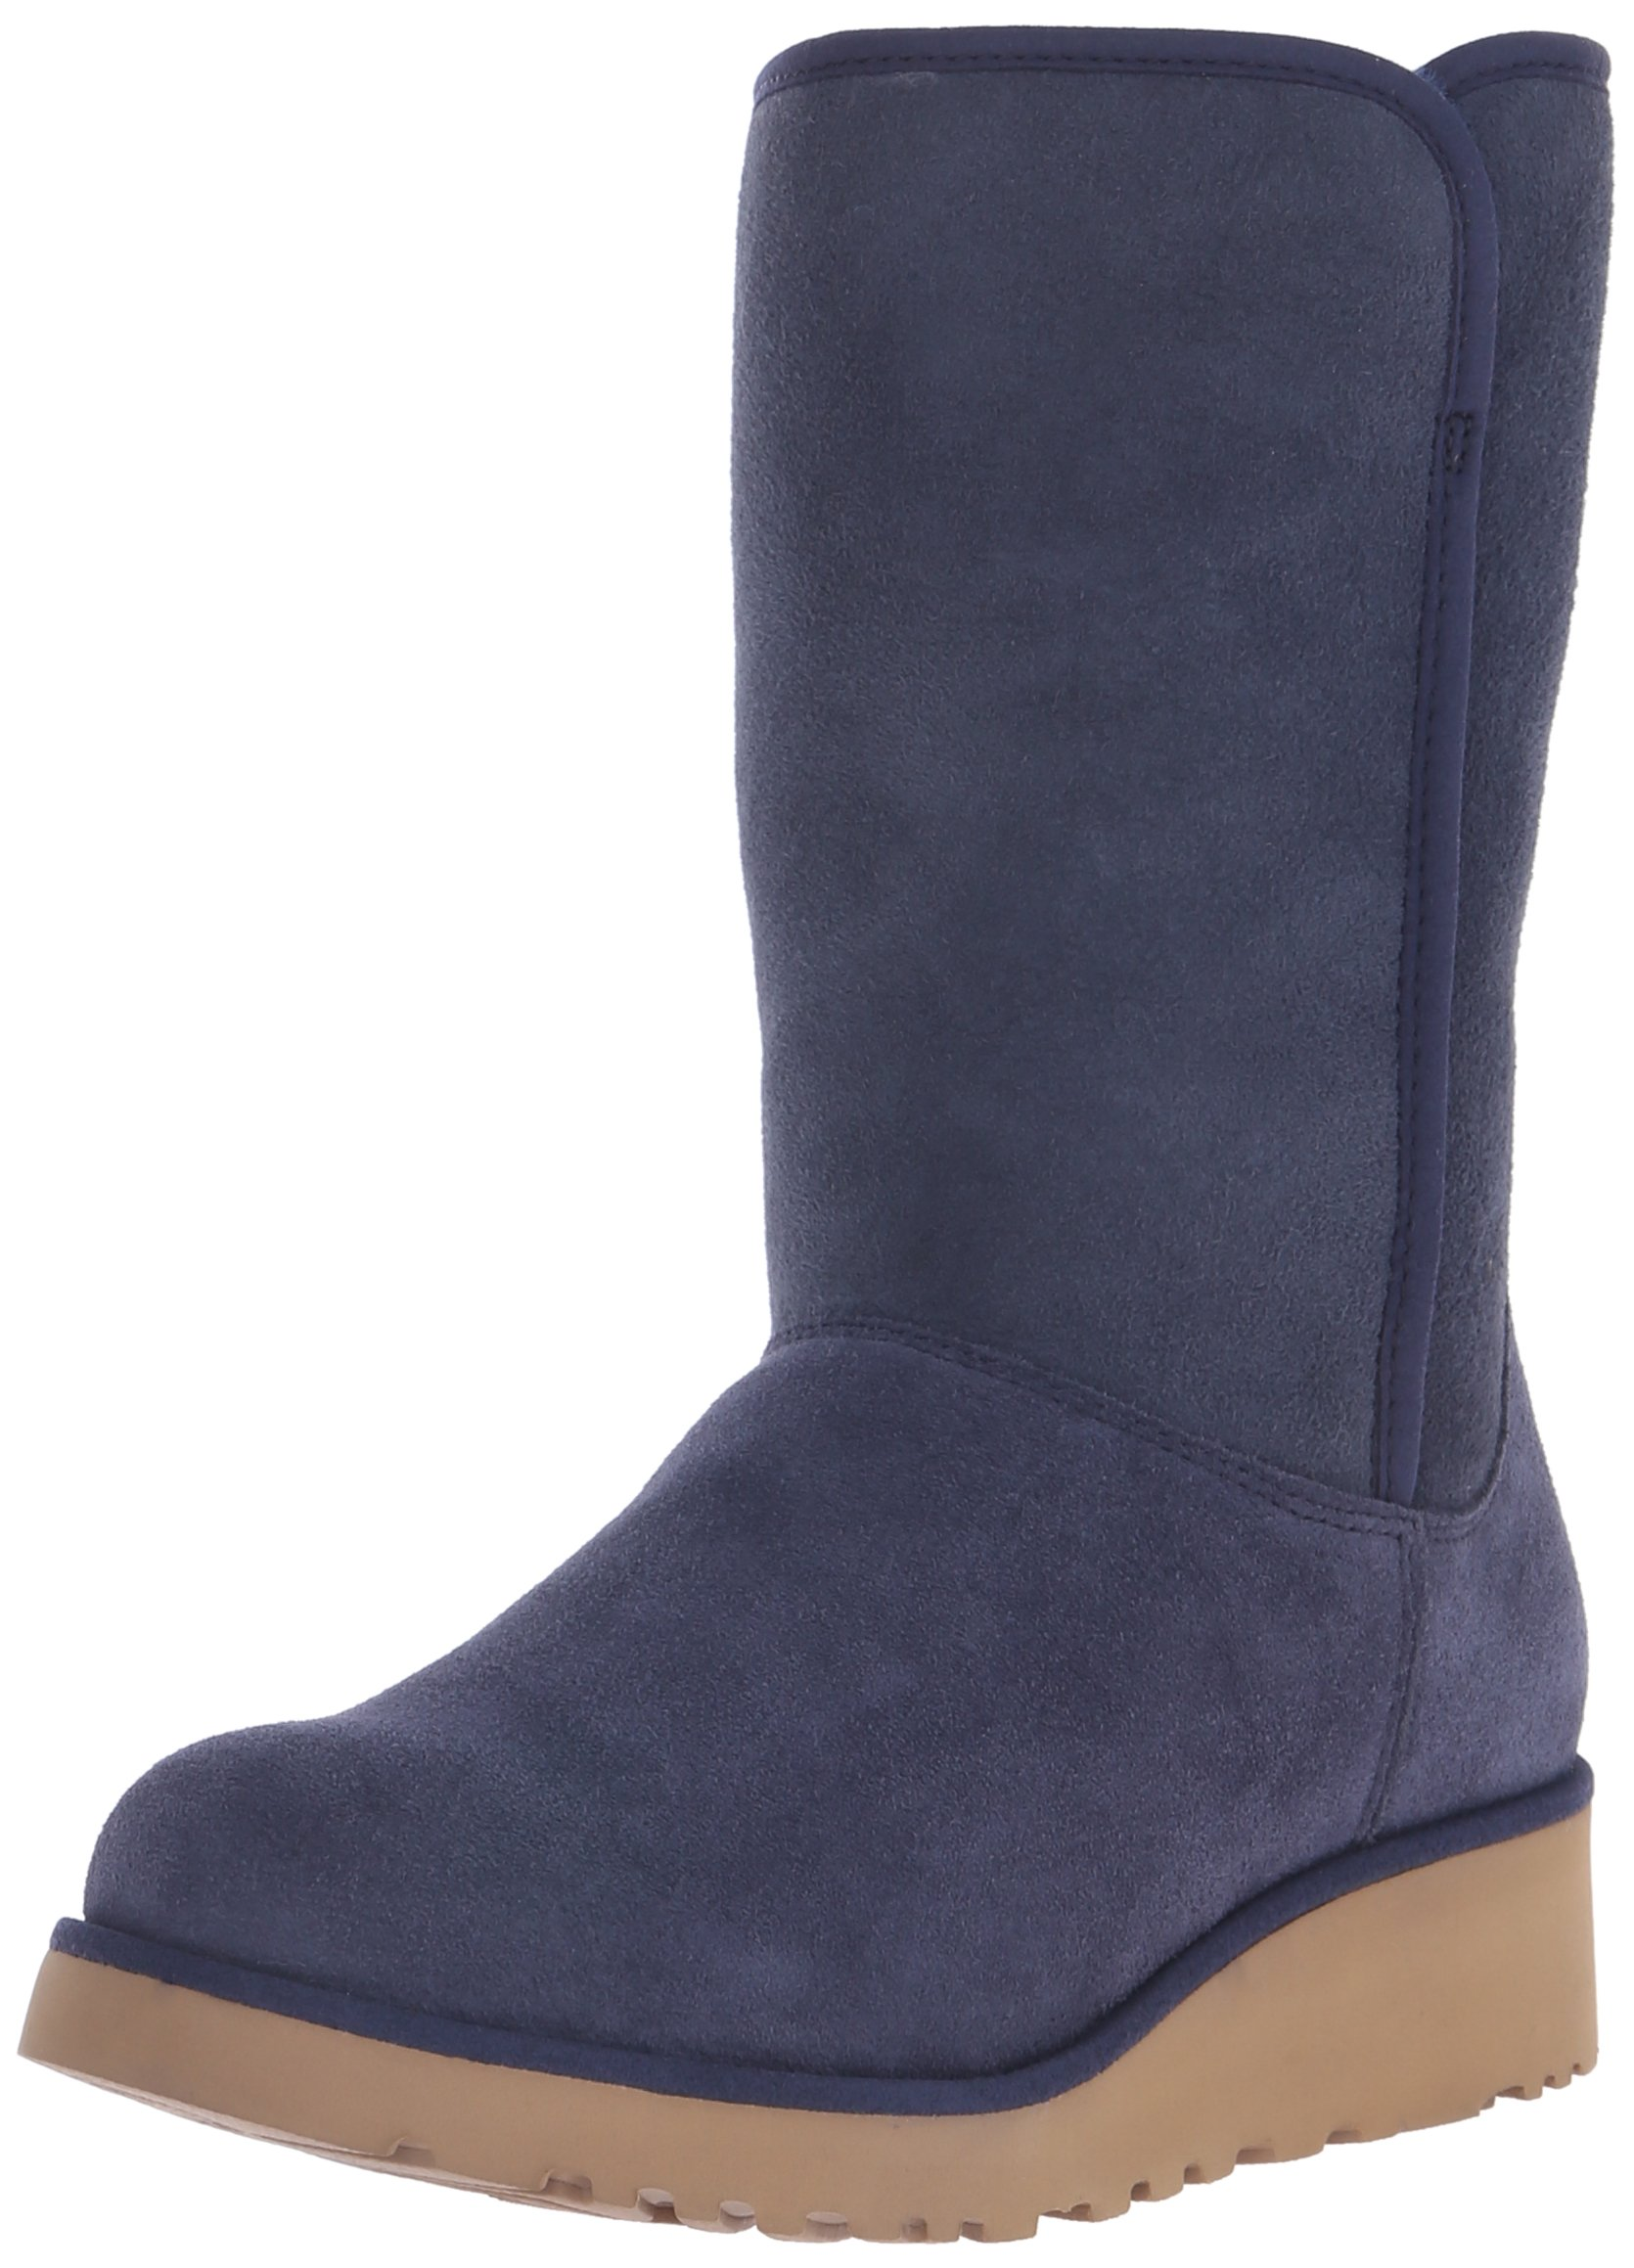 UGG Women's Amie Winter Boot, Navy, 7.5 B US